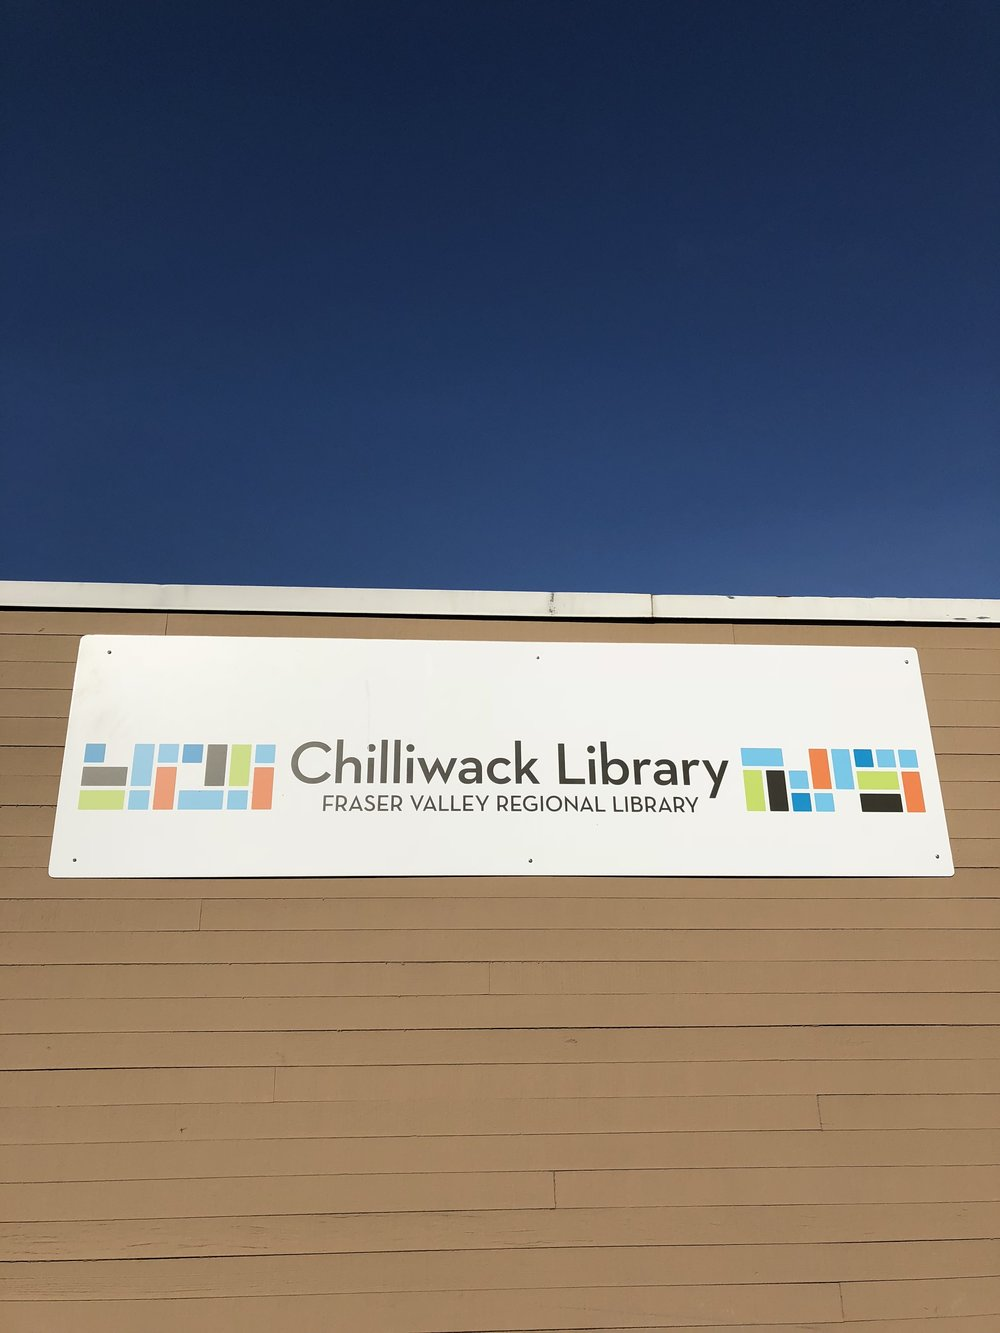 Chilliwack Library - Fraser Valley Regional Library